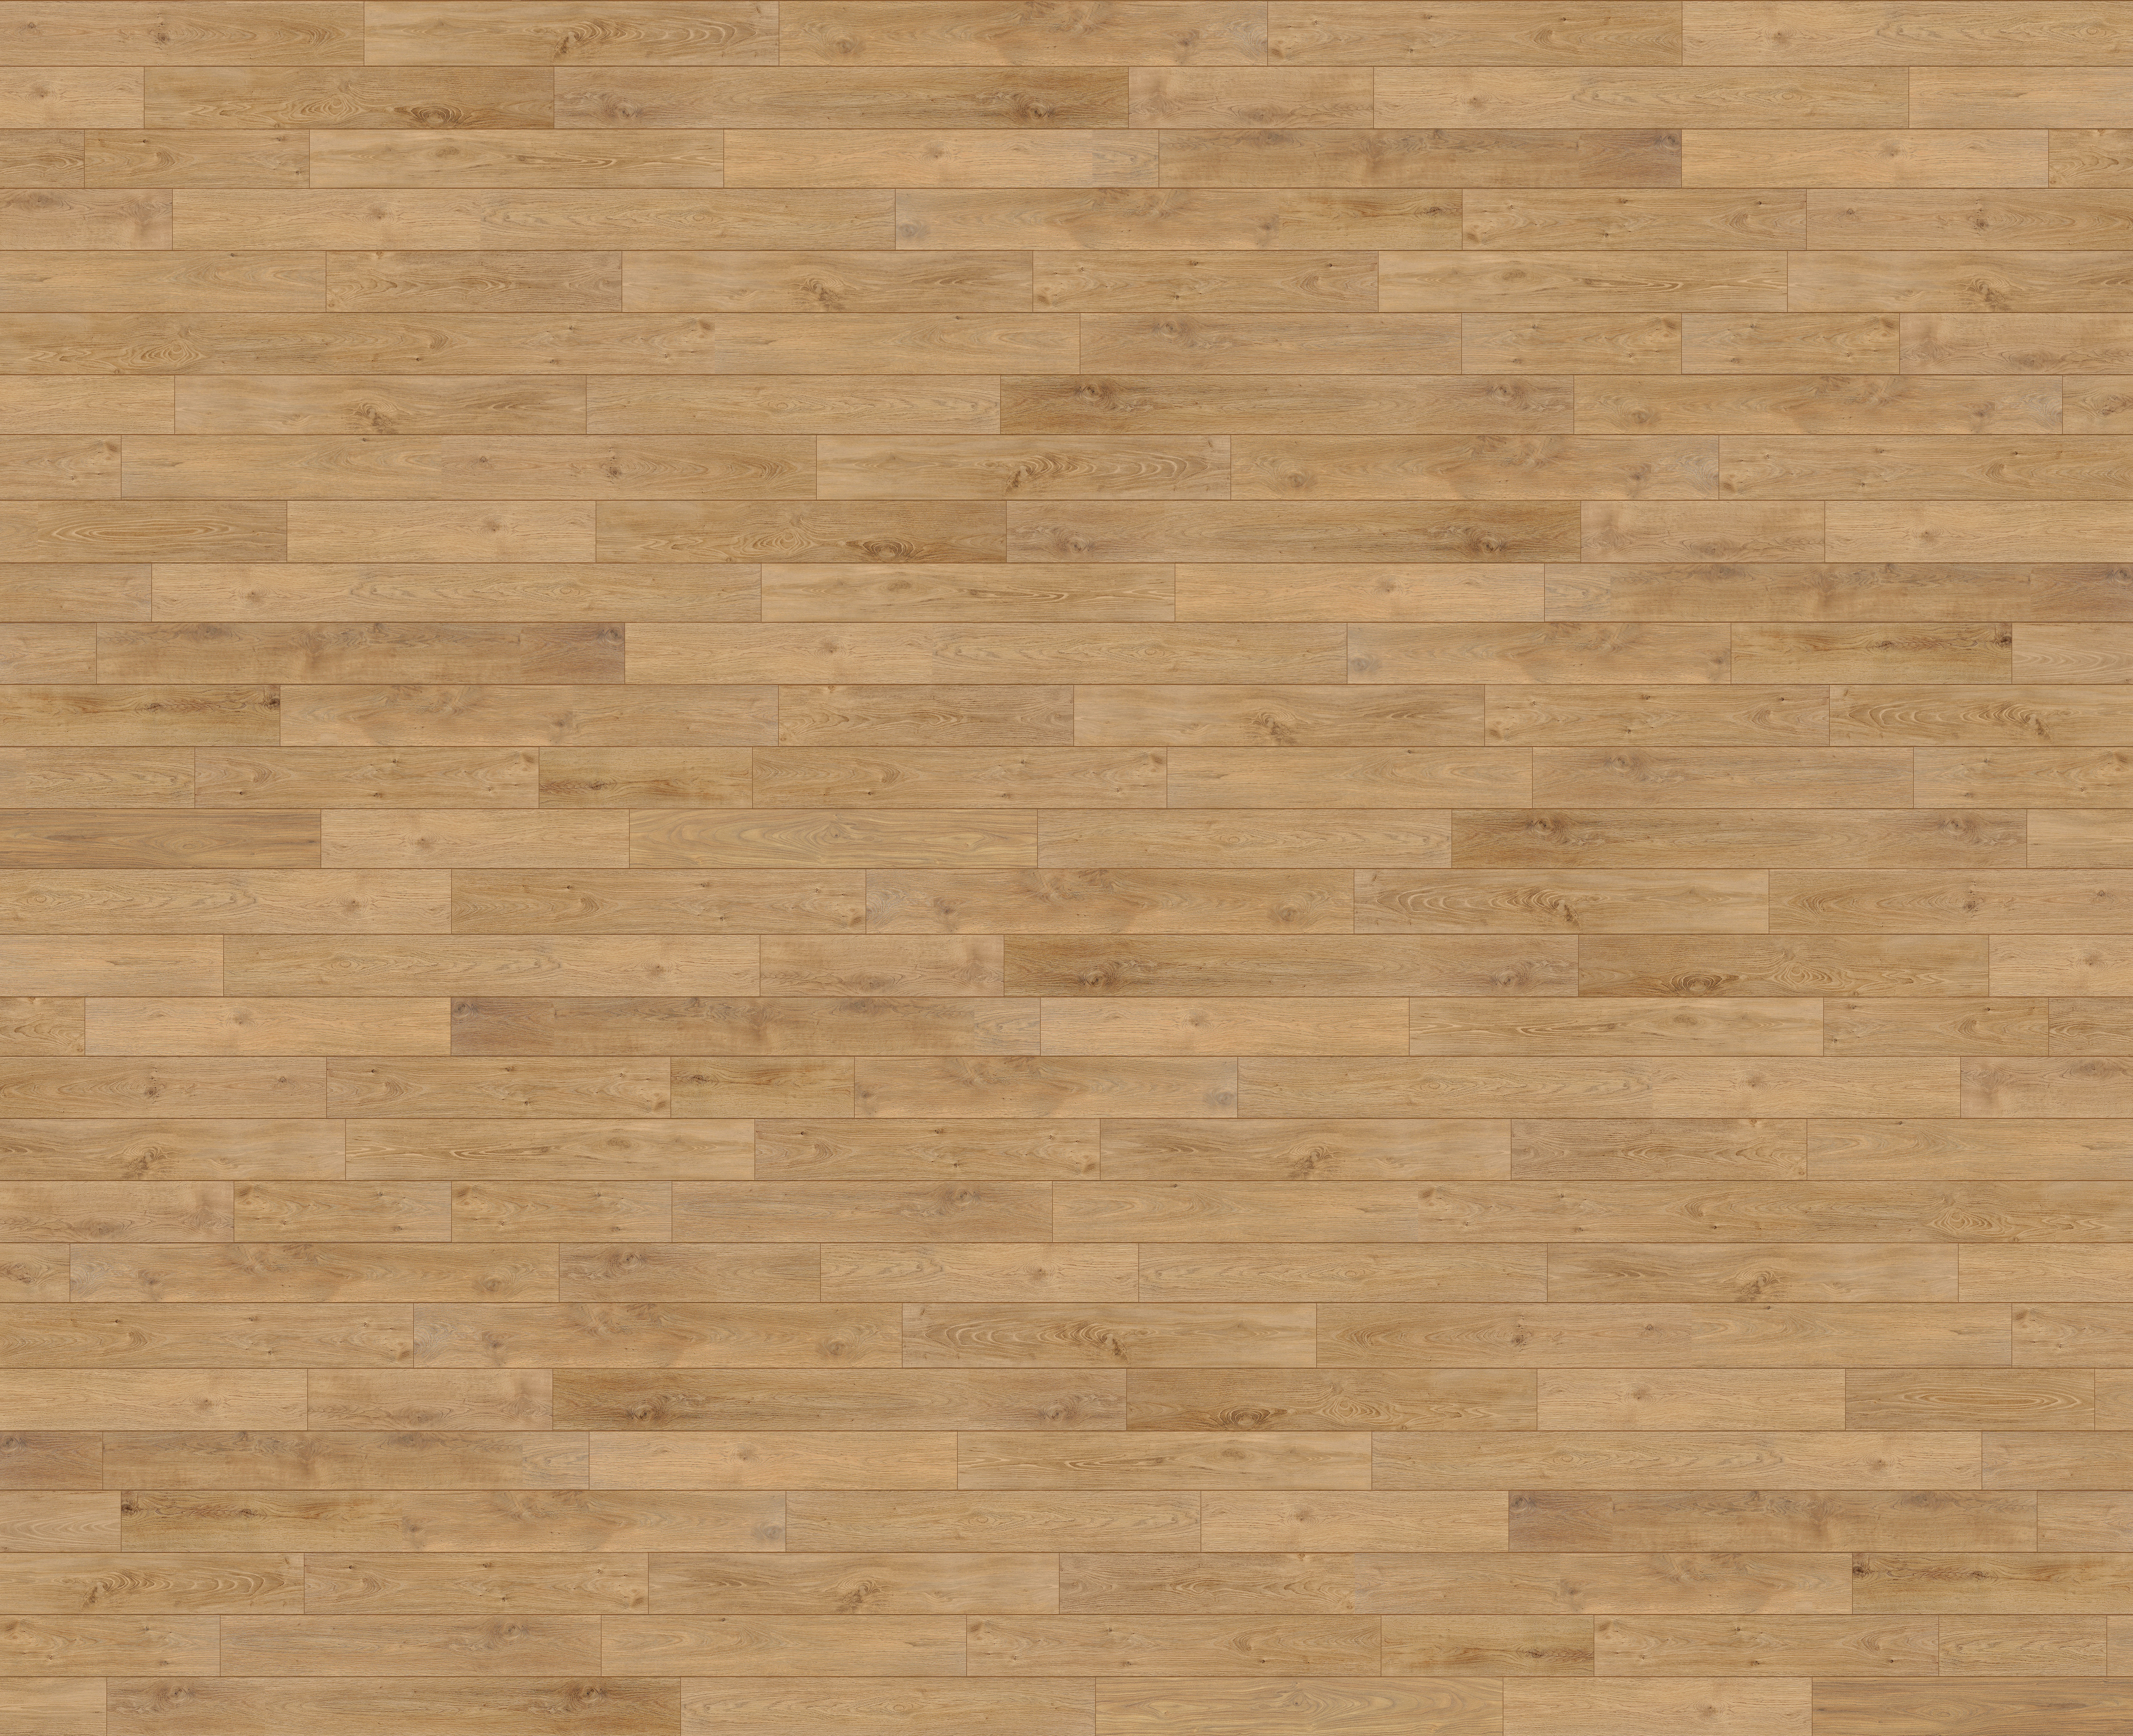 Free Floor Wood texture seamless background 10D max by Chacalxxx on